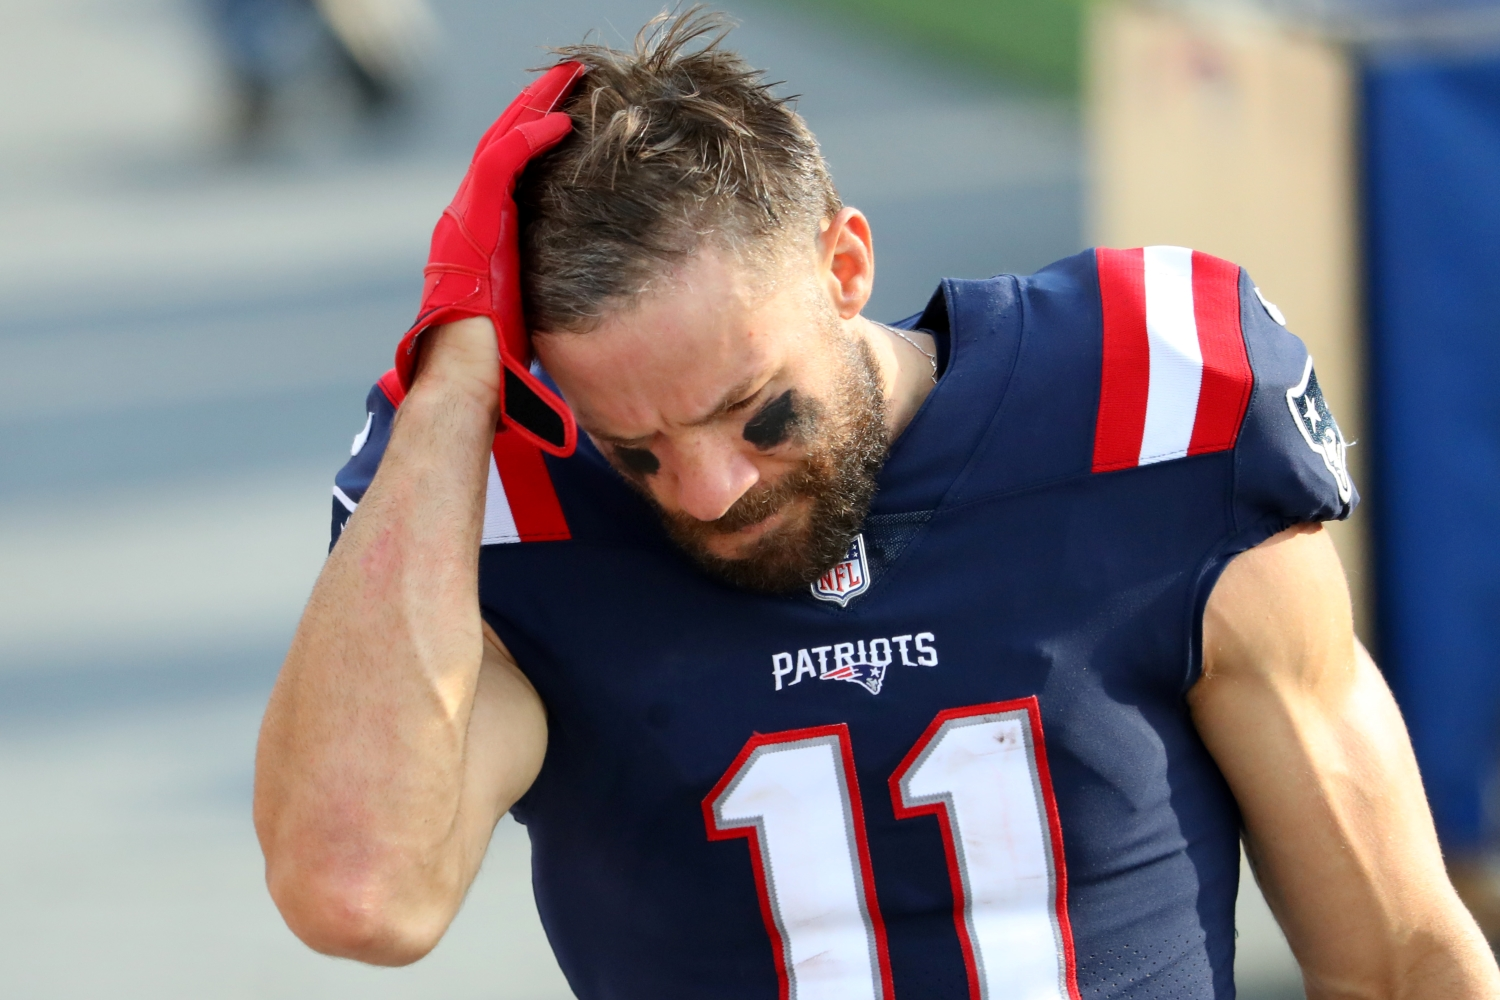 Julian Edelman of the New England Patriots looks on after the game against the Denver Broncos.